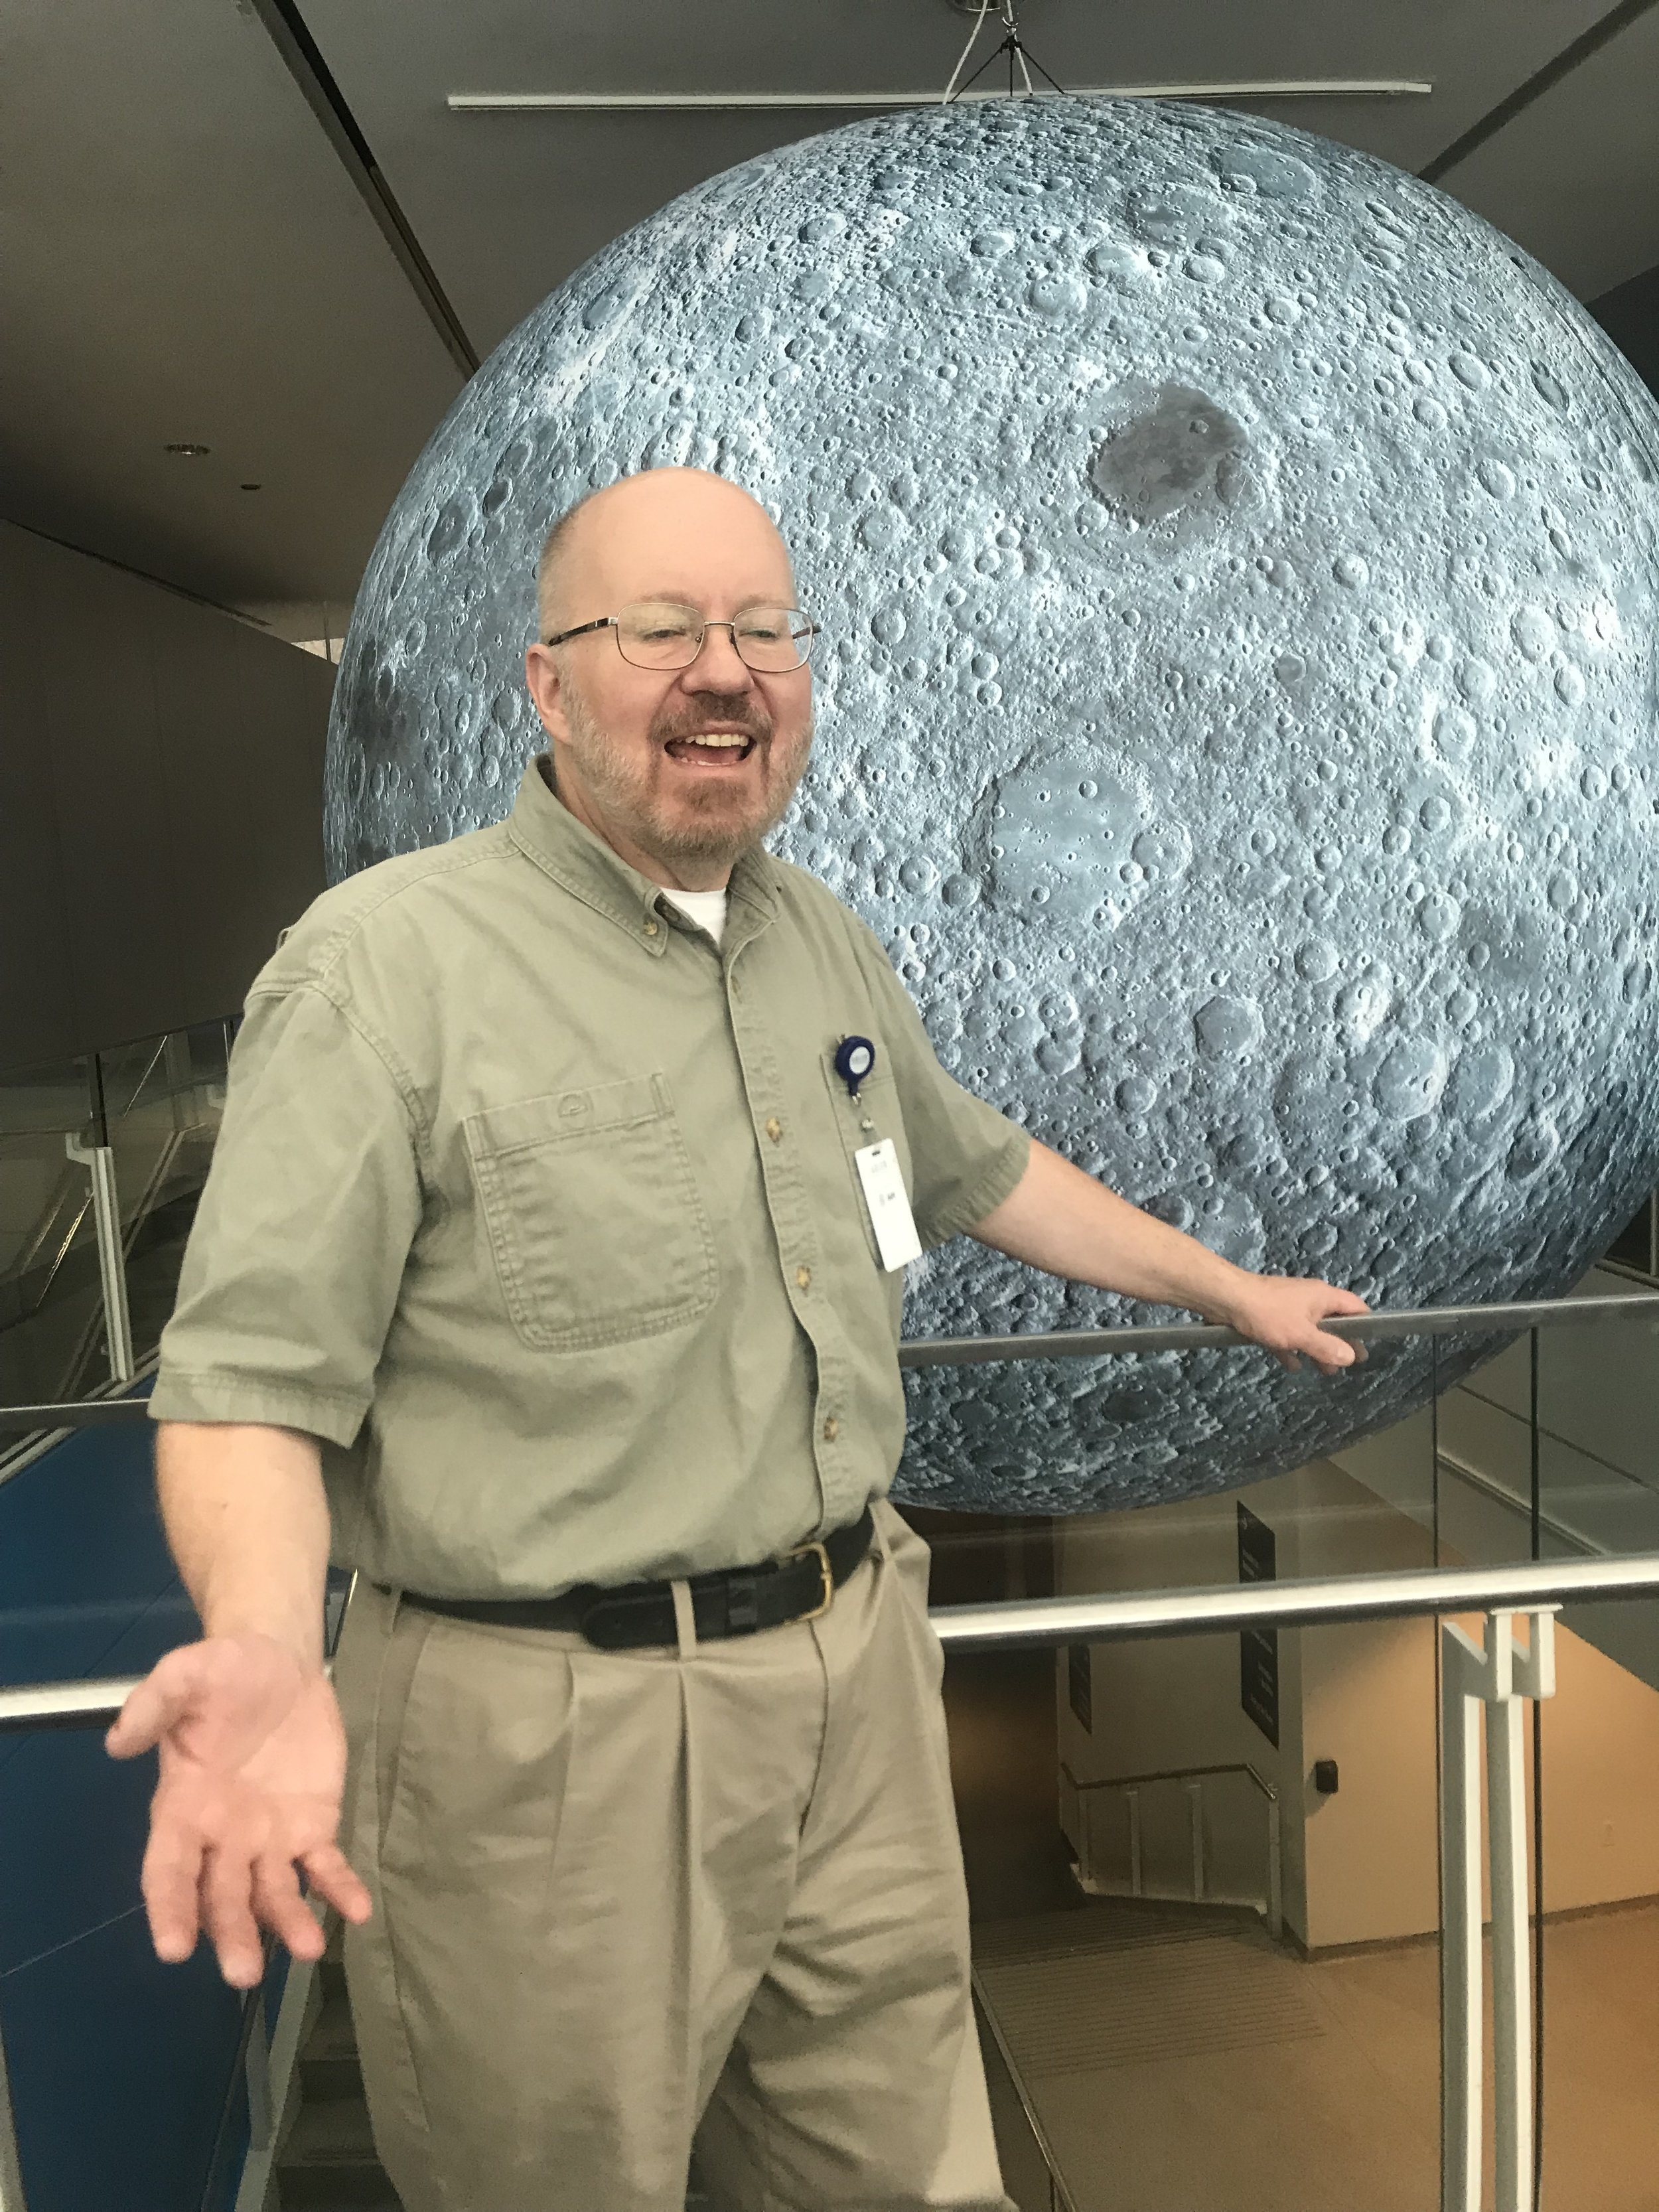 Astronomer Mark Hammergren stands in front of a new moon globe at the Adler Planetarium. This view gives visitors a look at the far side of the moon.